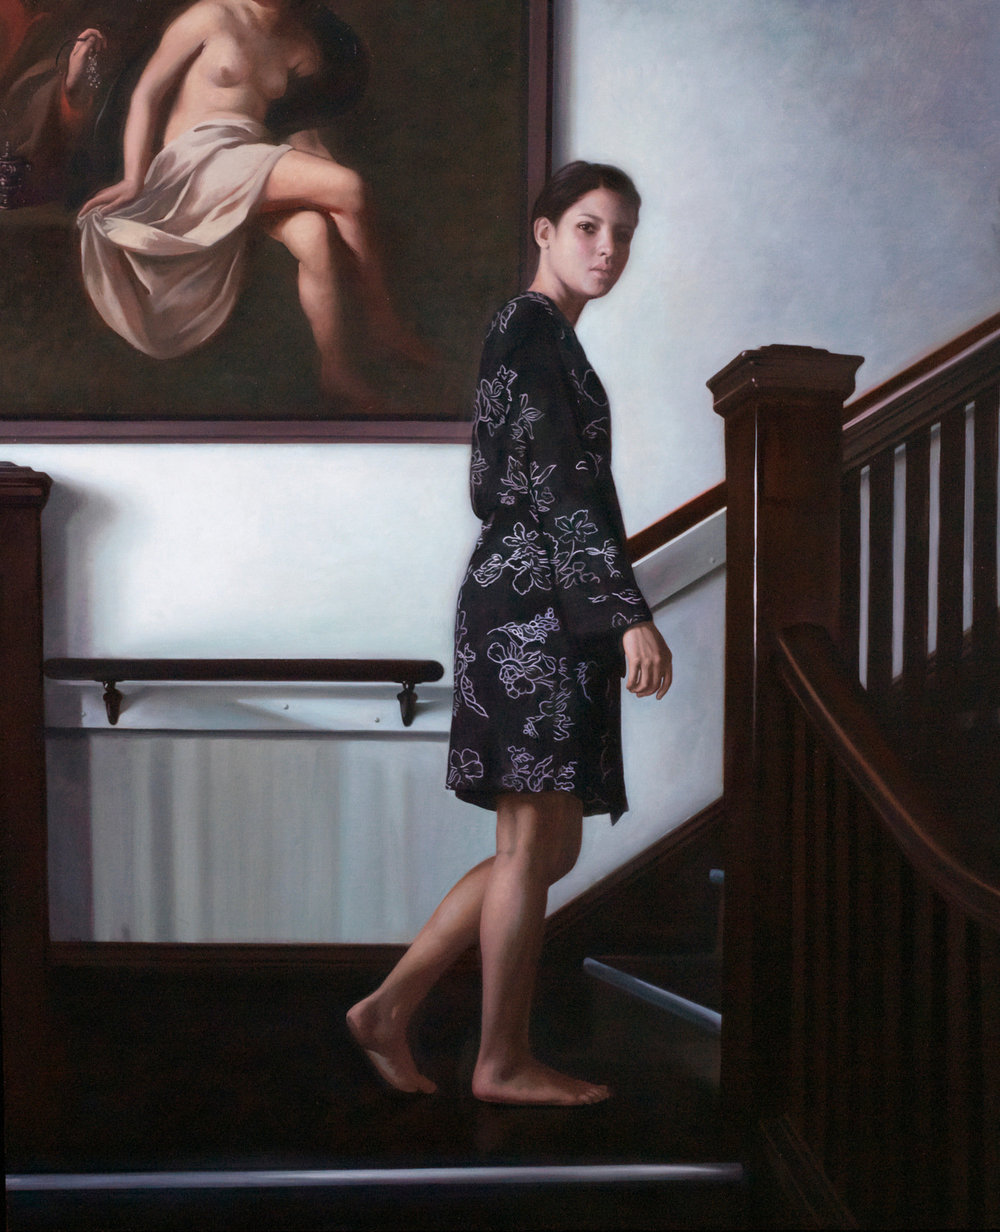 Inversion, 2014, Oil on linen, 32 x 26 inches, Private collection